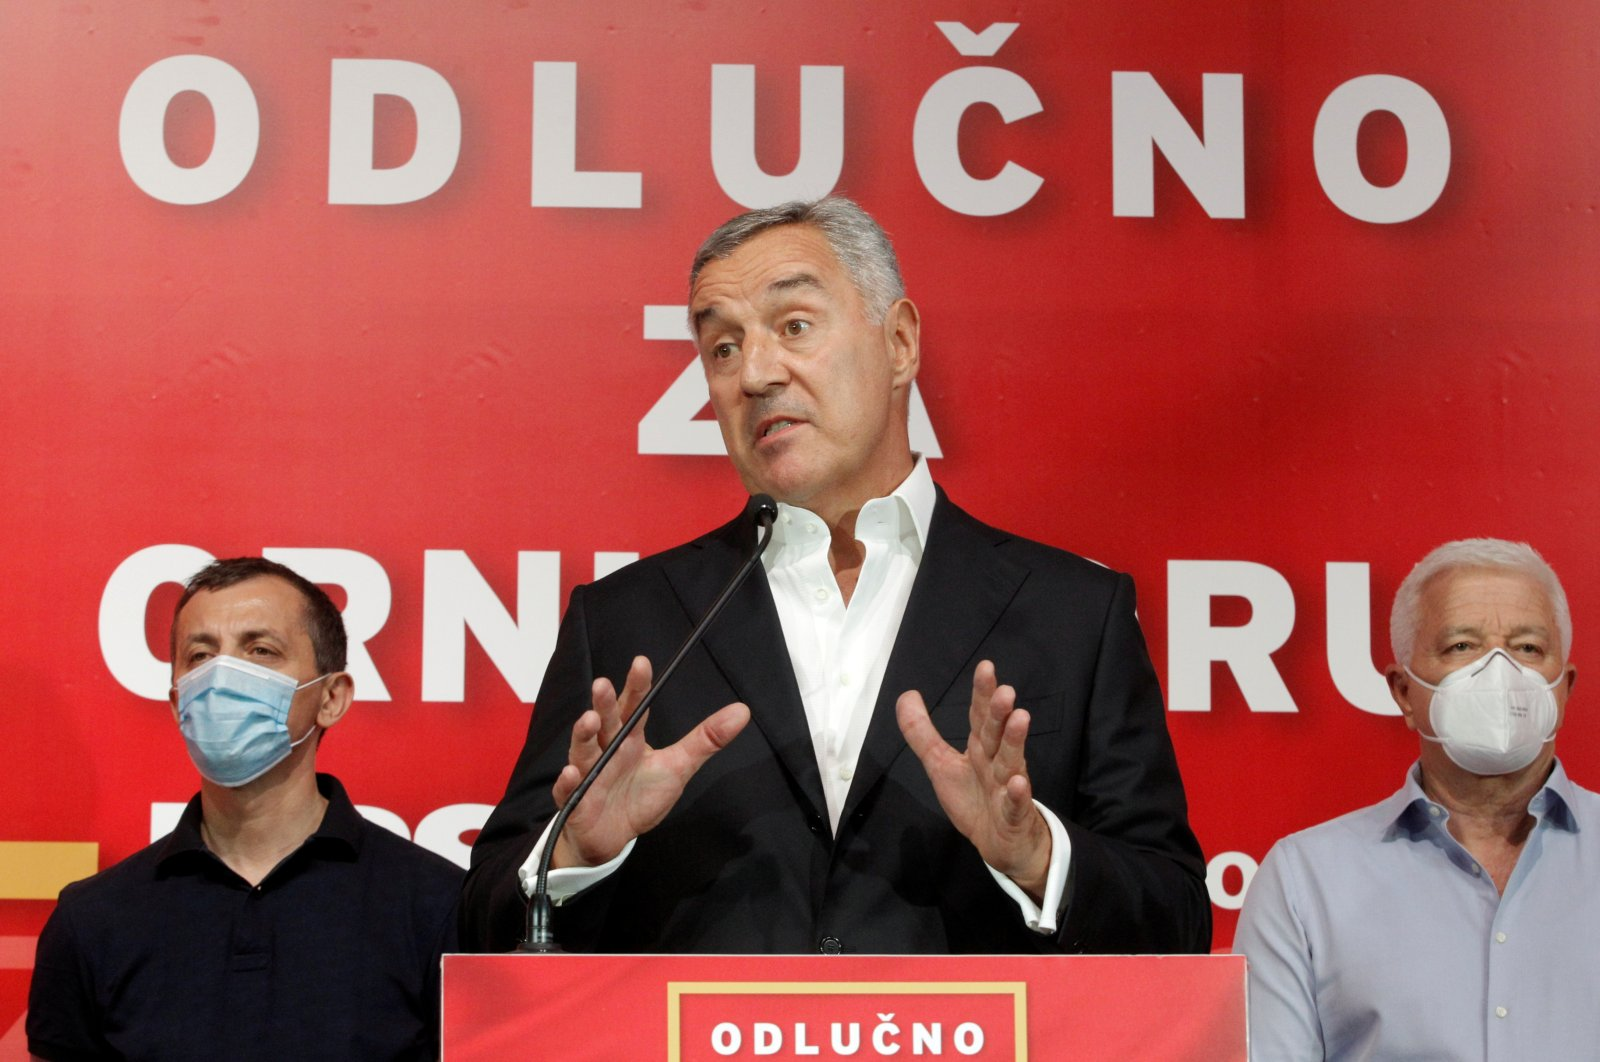 Montenegro's president and leader of the ruling Democratic Party of Socialists, Milo Djukanovic, speaks to the media after the general election in Podgorica, Montenegro, Aug. 30, 2020. (Reuters Photo)